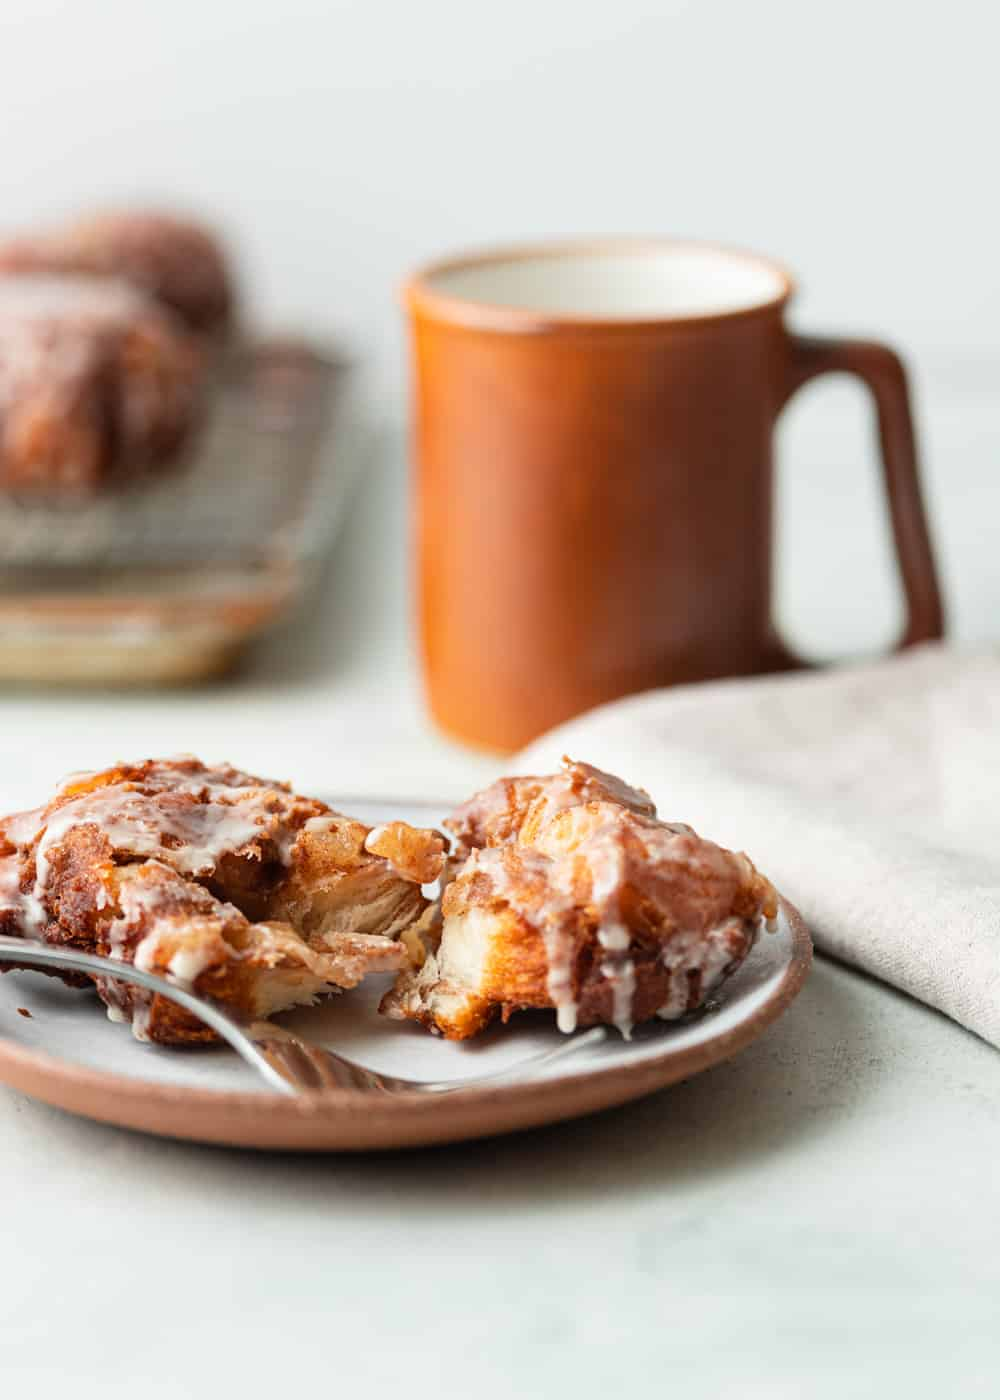 apple fritter on a plate with a cup of coffee